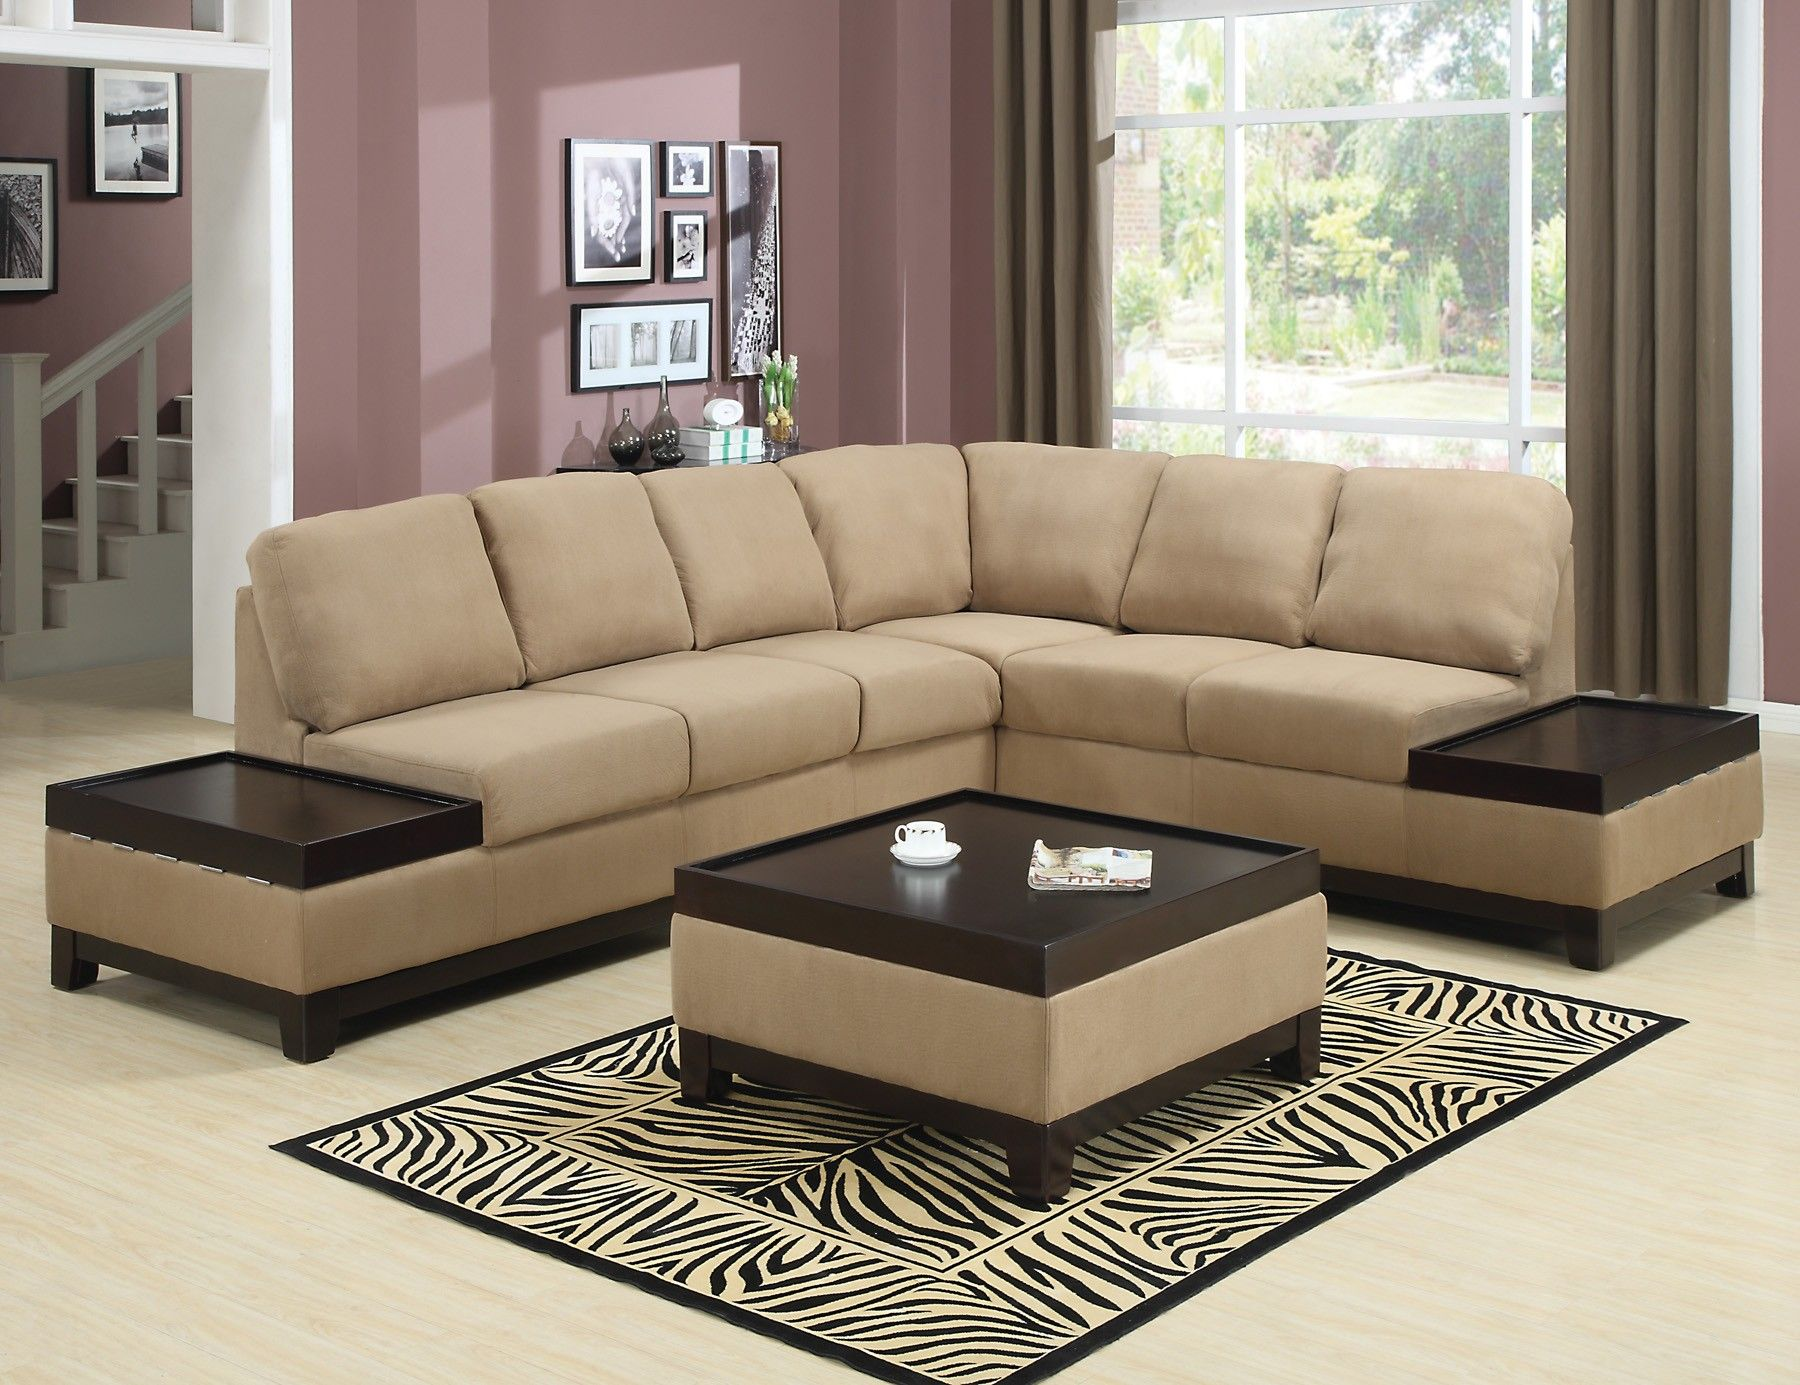 Built In Tables Tan Microfiber Sectional W Built In